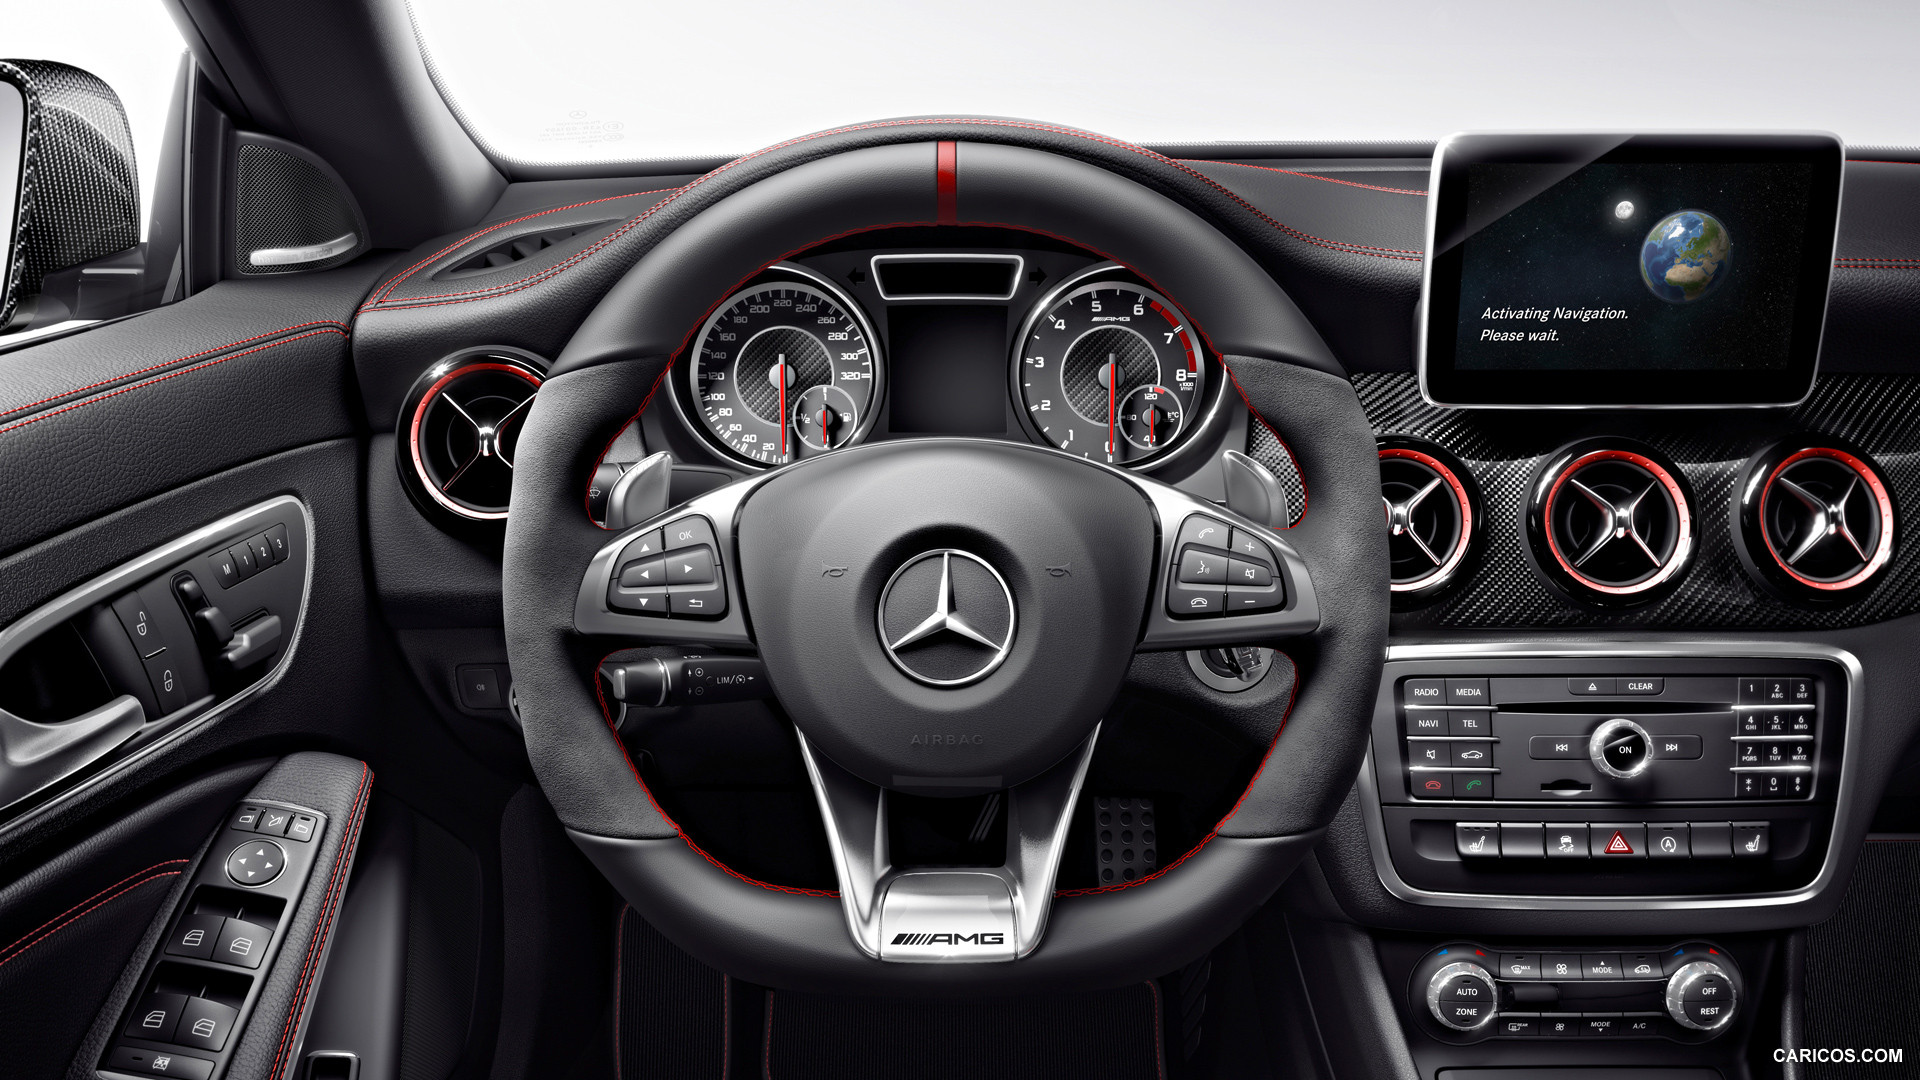 2015 Mercedes Benz CLA 45 AMG Shooting Brake   Interior HD 1920x1080